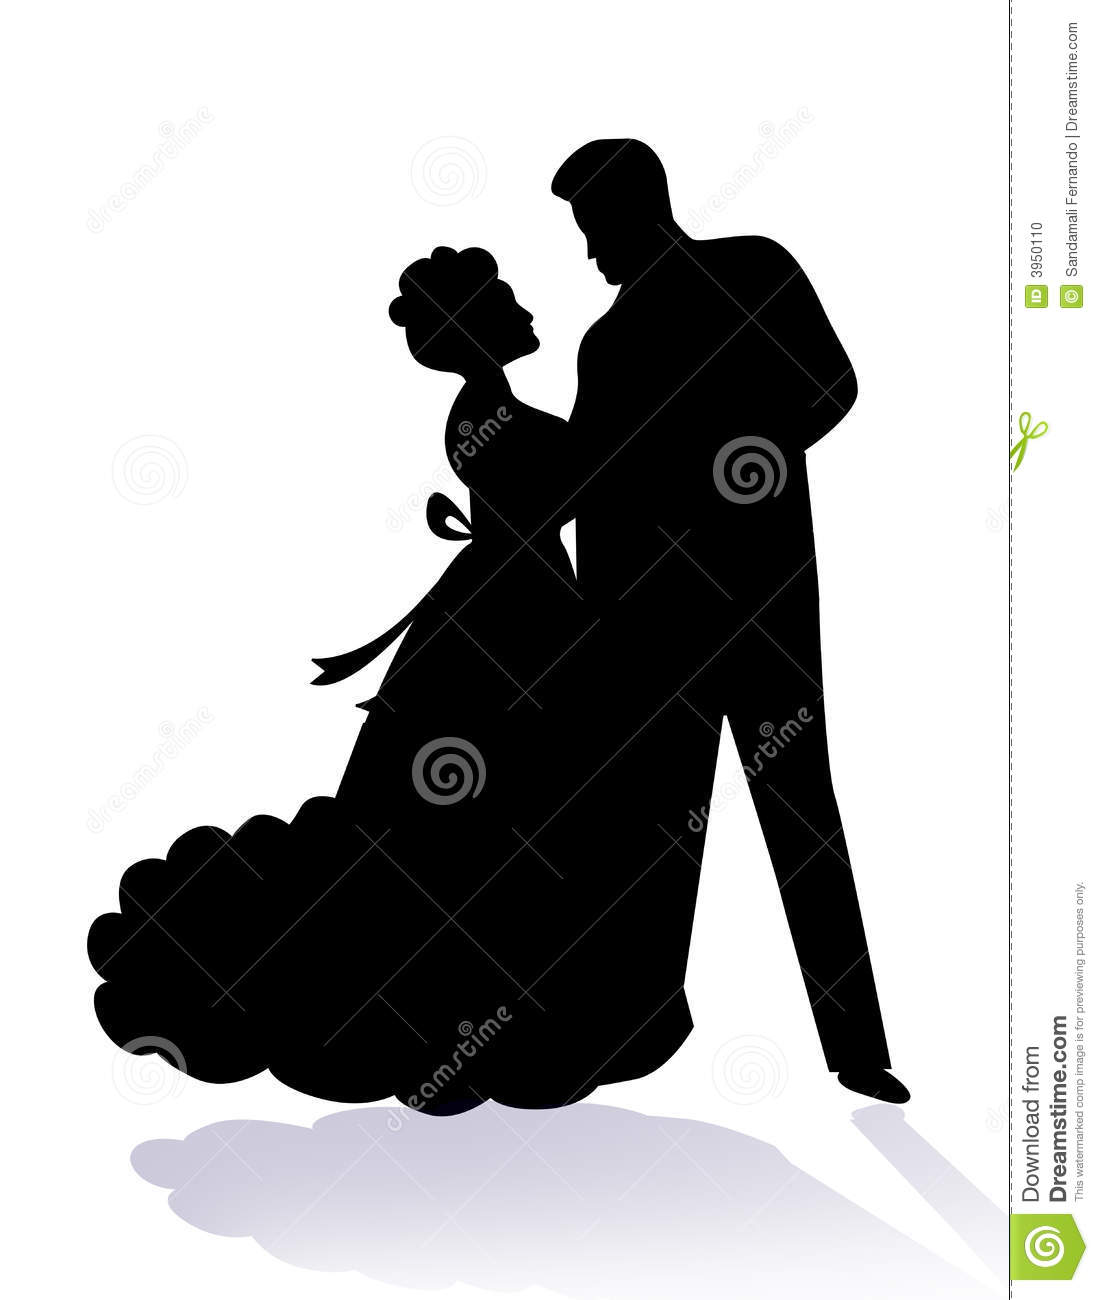 Results furthermore Stock Photo Couple Dancing Together Lovers Image3950110 moreover Meubles Sur Mesure 932698456545 furthermore Italian Flooring Designs additionally Our Favorite Buildings Us Edition. on arch art deco design